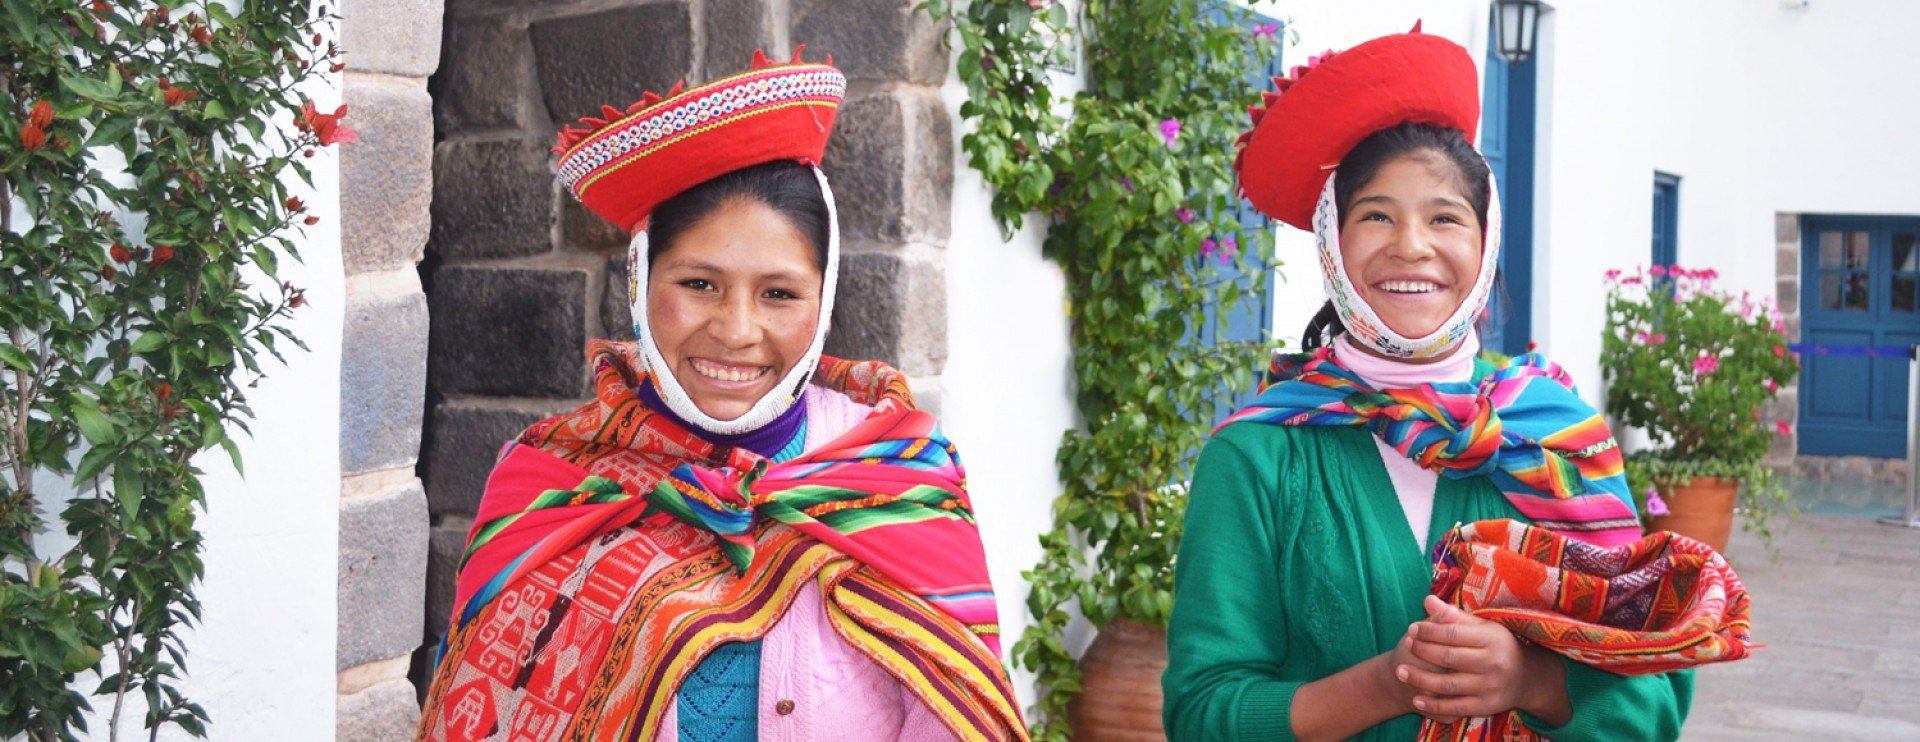 peru girls in traditional outfit